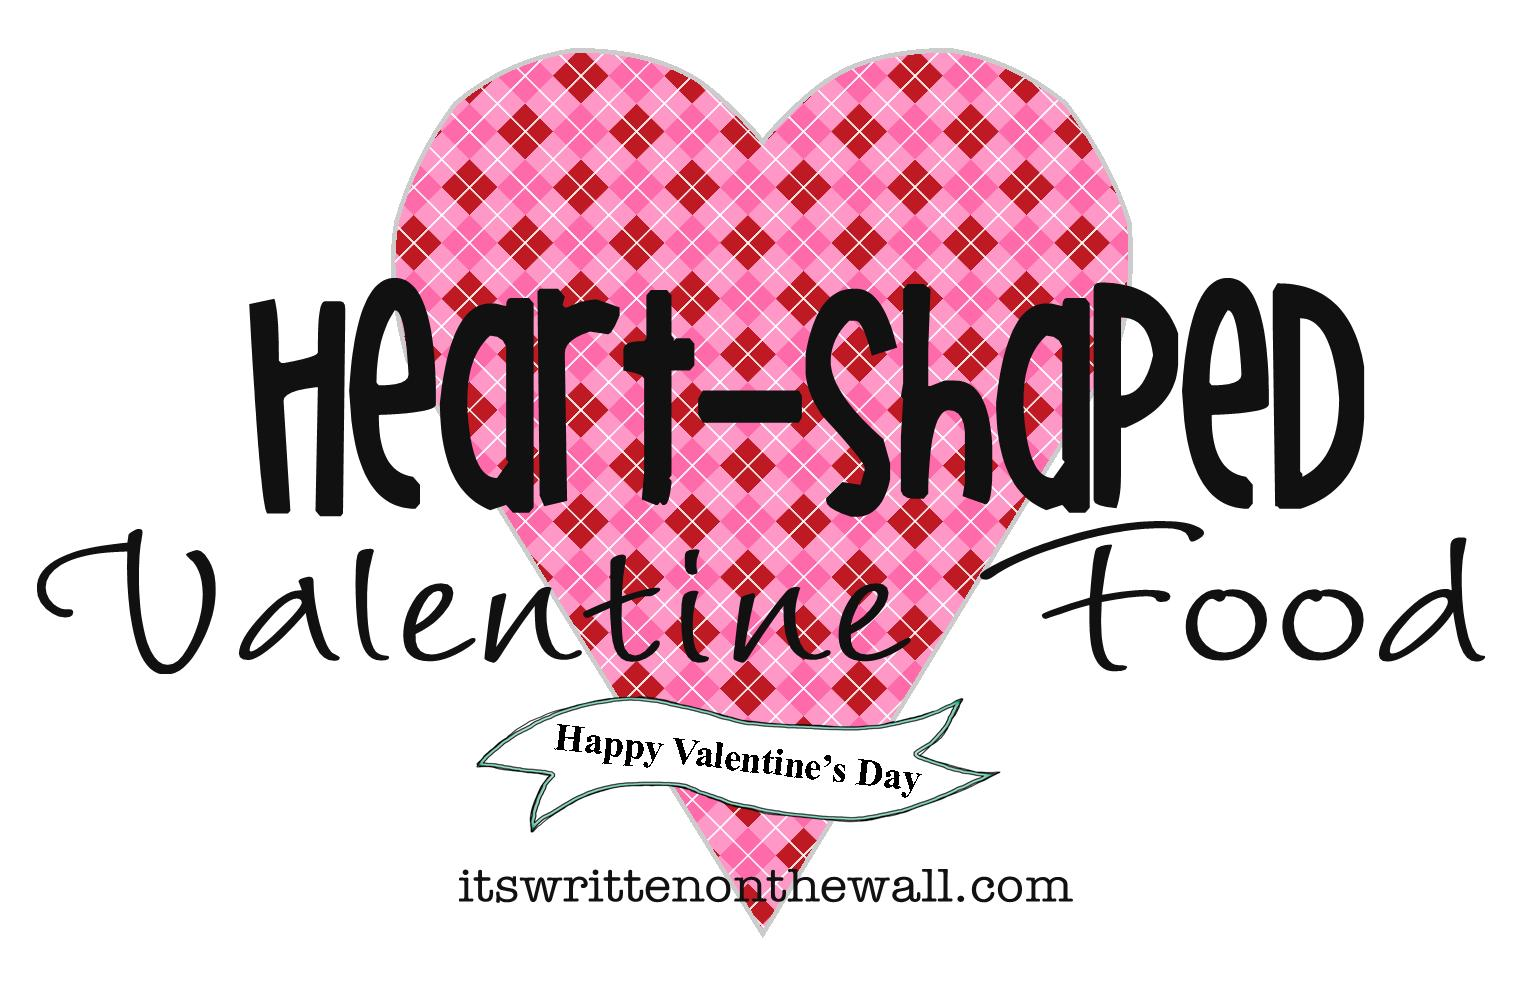 It S Written On The Wall Heart Shaped Food For Your